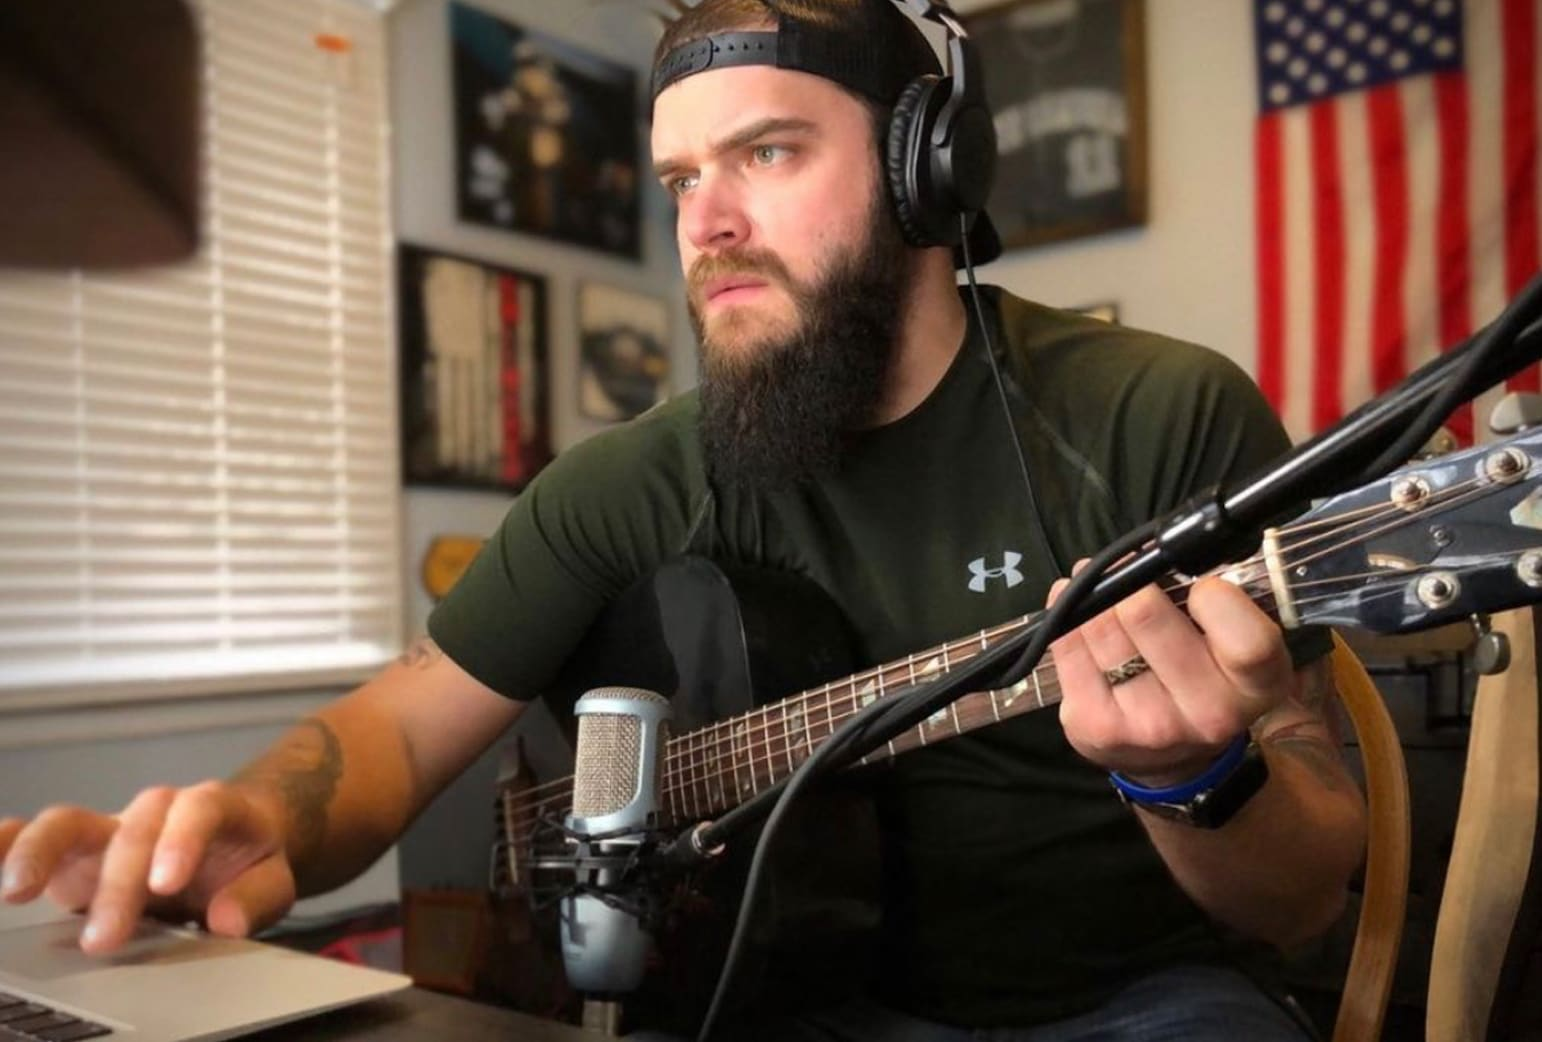 Josh Gallagher plays country rock music.